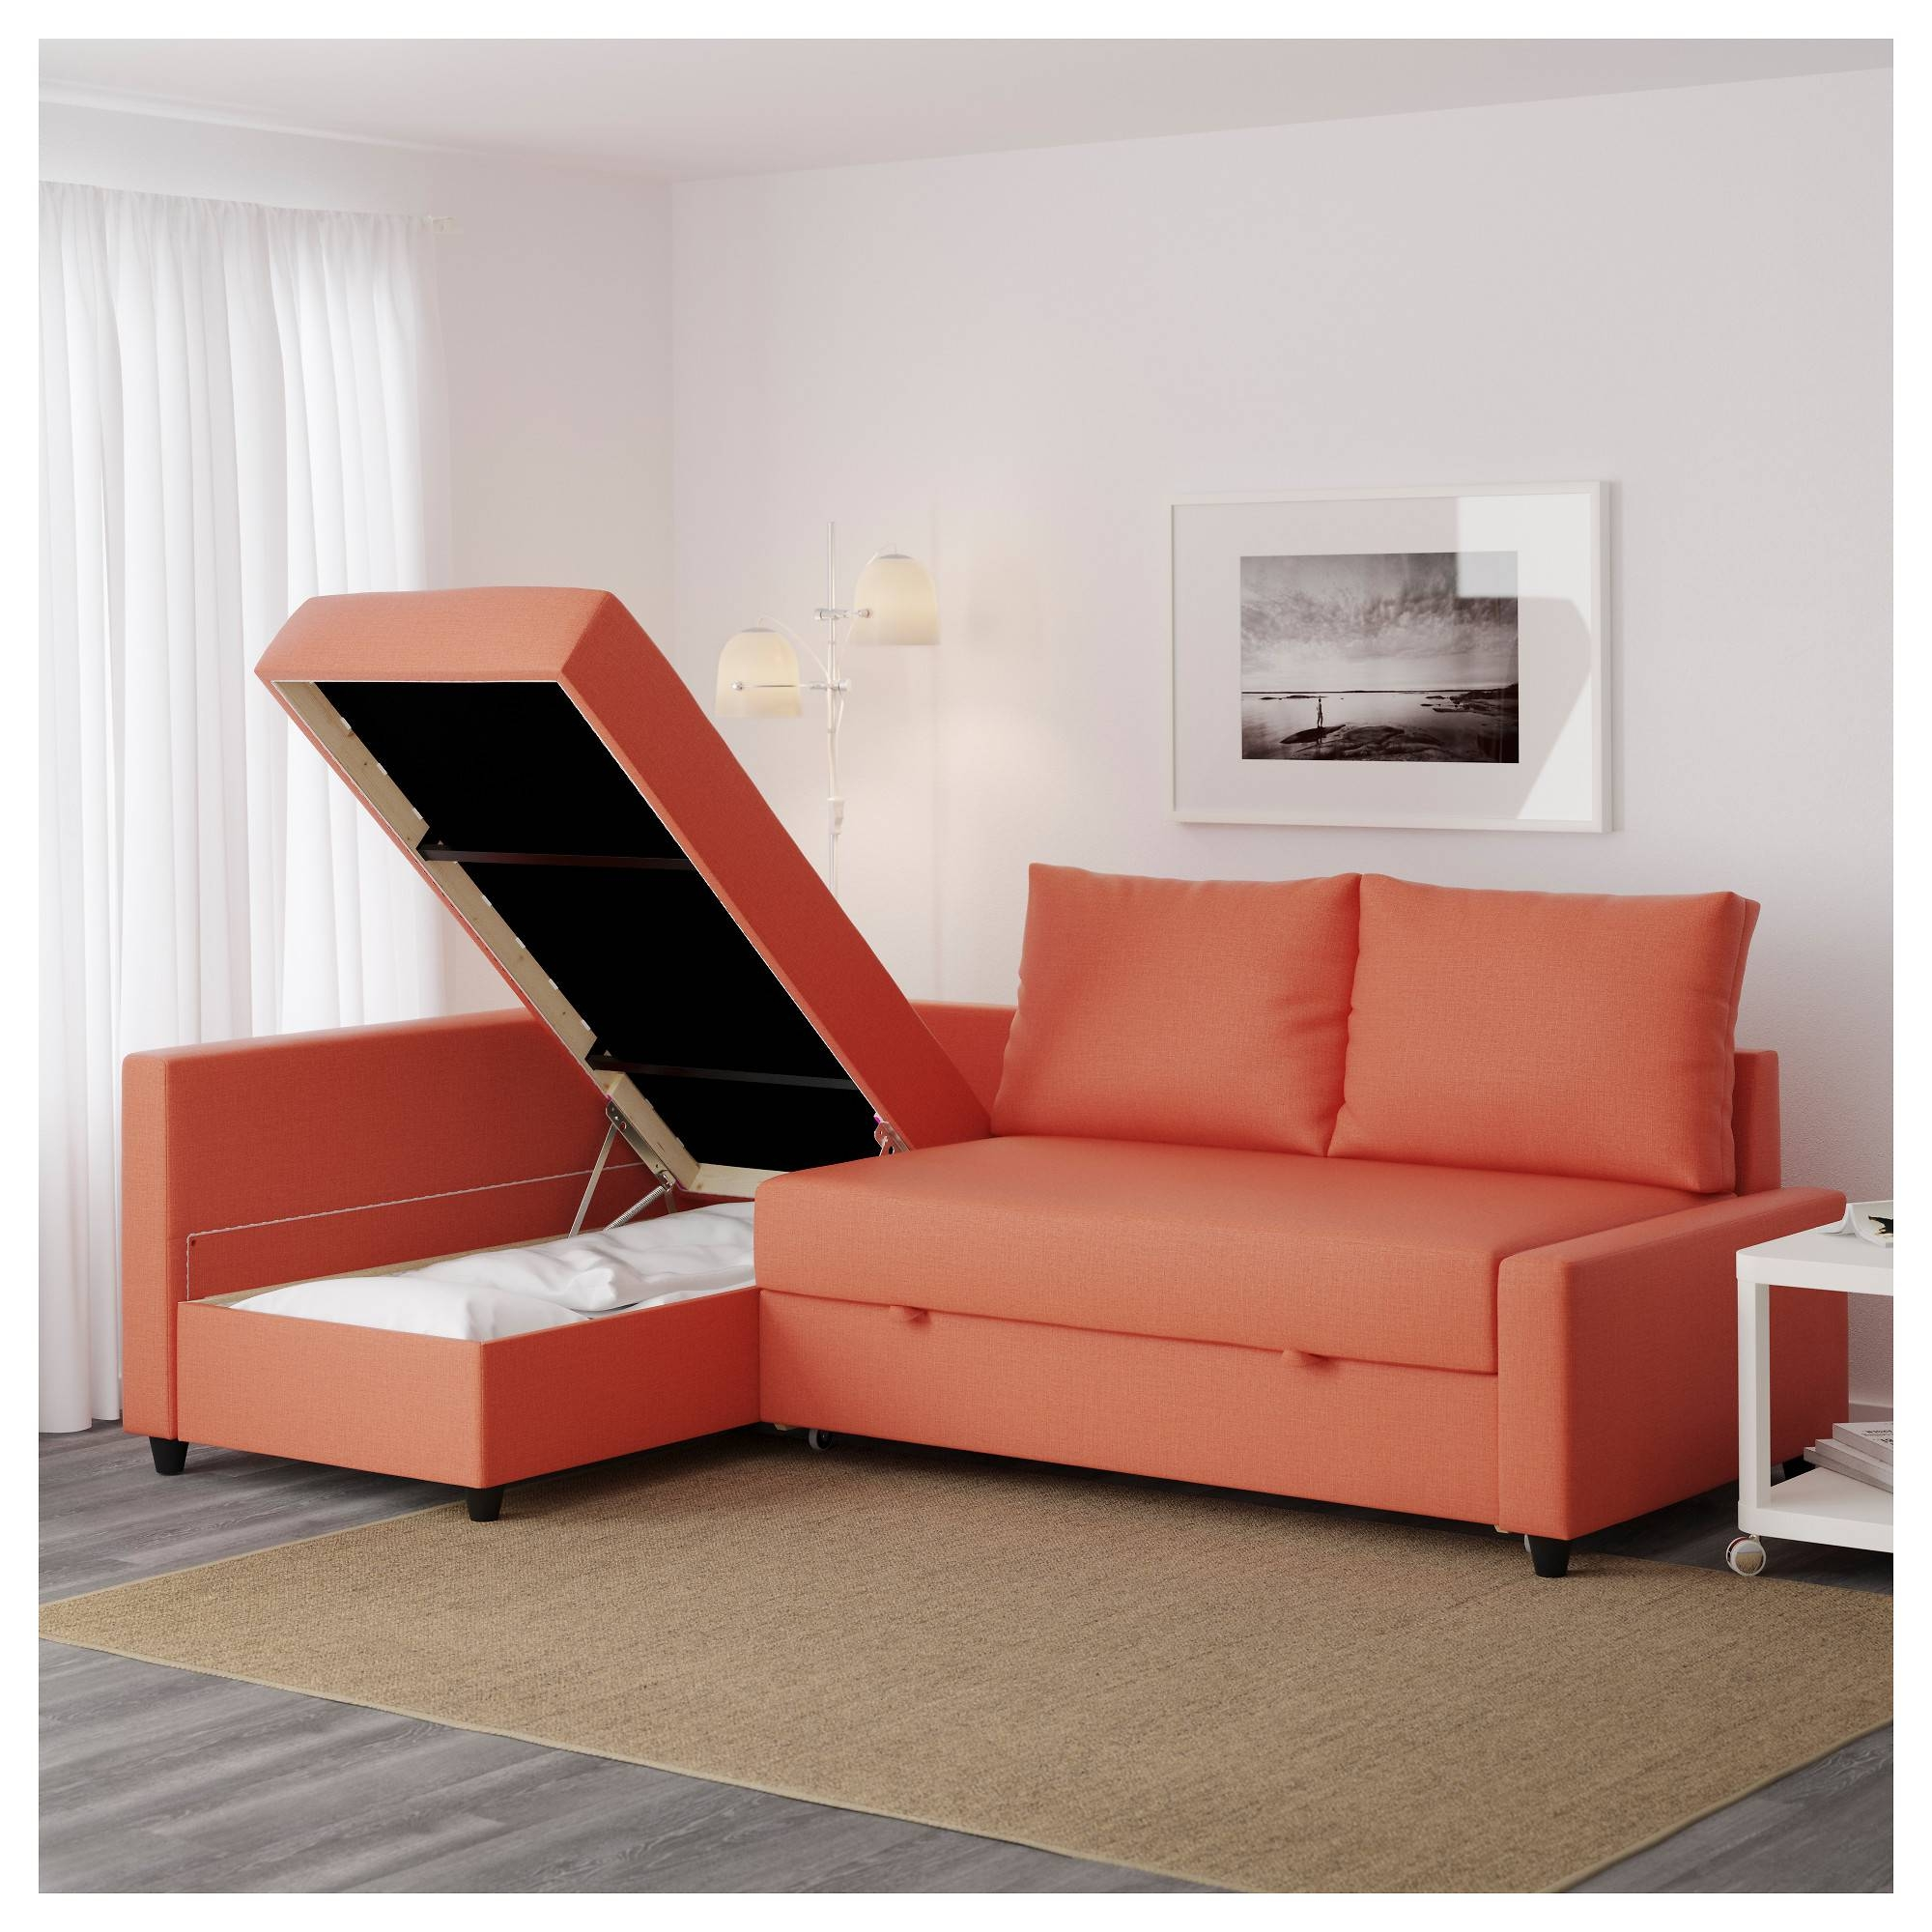 Friheten Corner Sofa-Bed With Storage Skiftebo Dark Orange - Ikea with regard to Orange Ikea Sofas (Image 12 of 30)